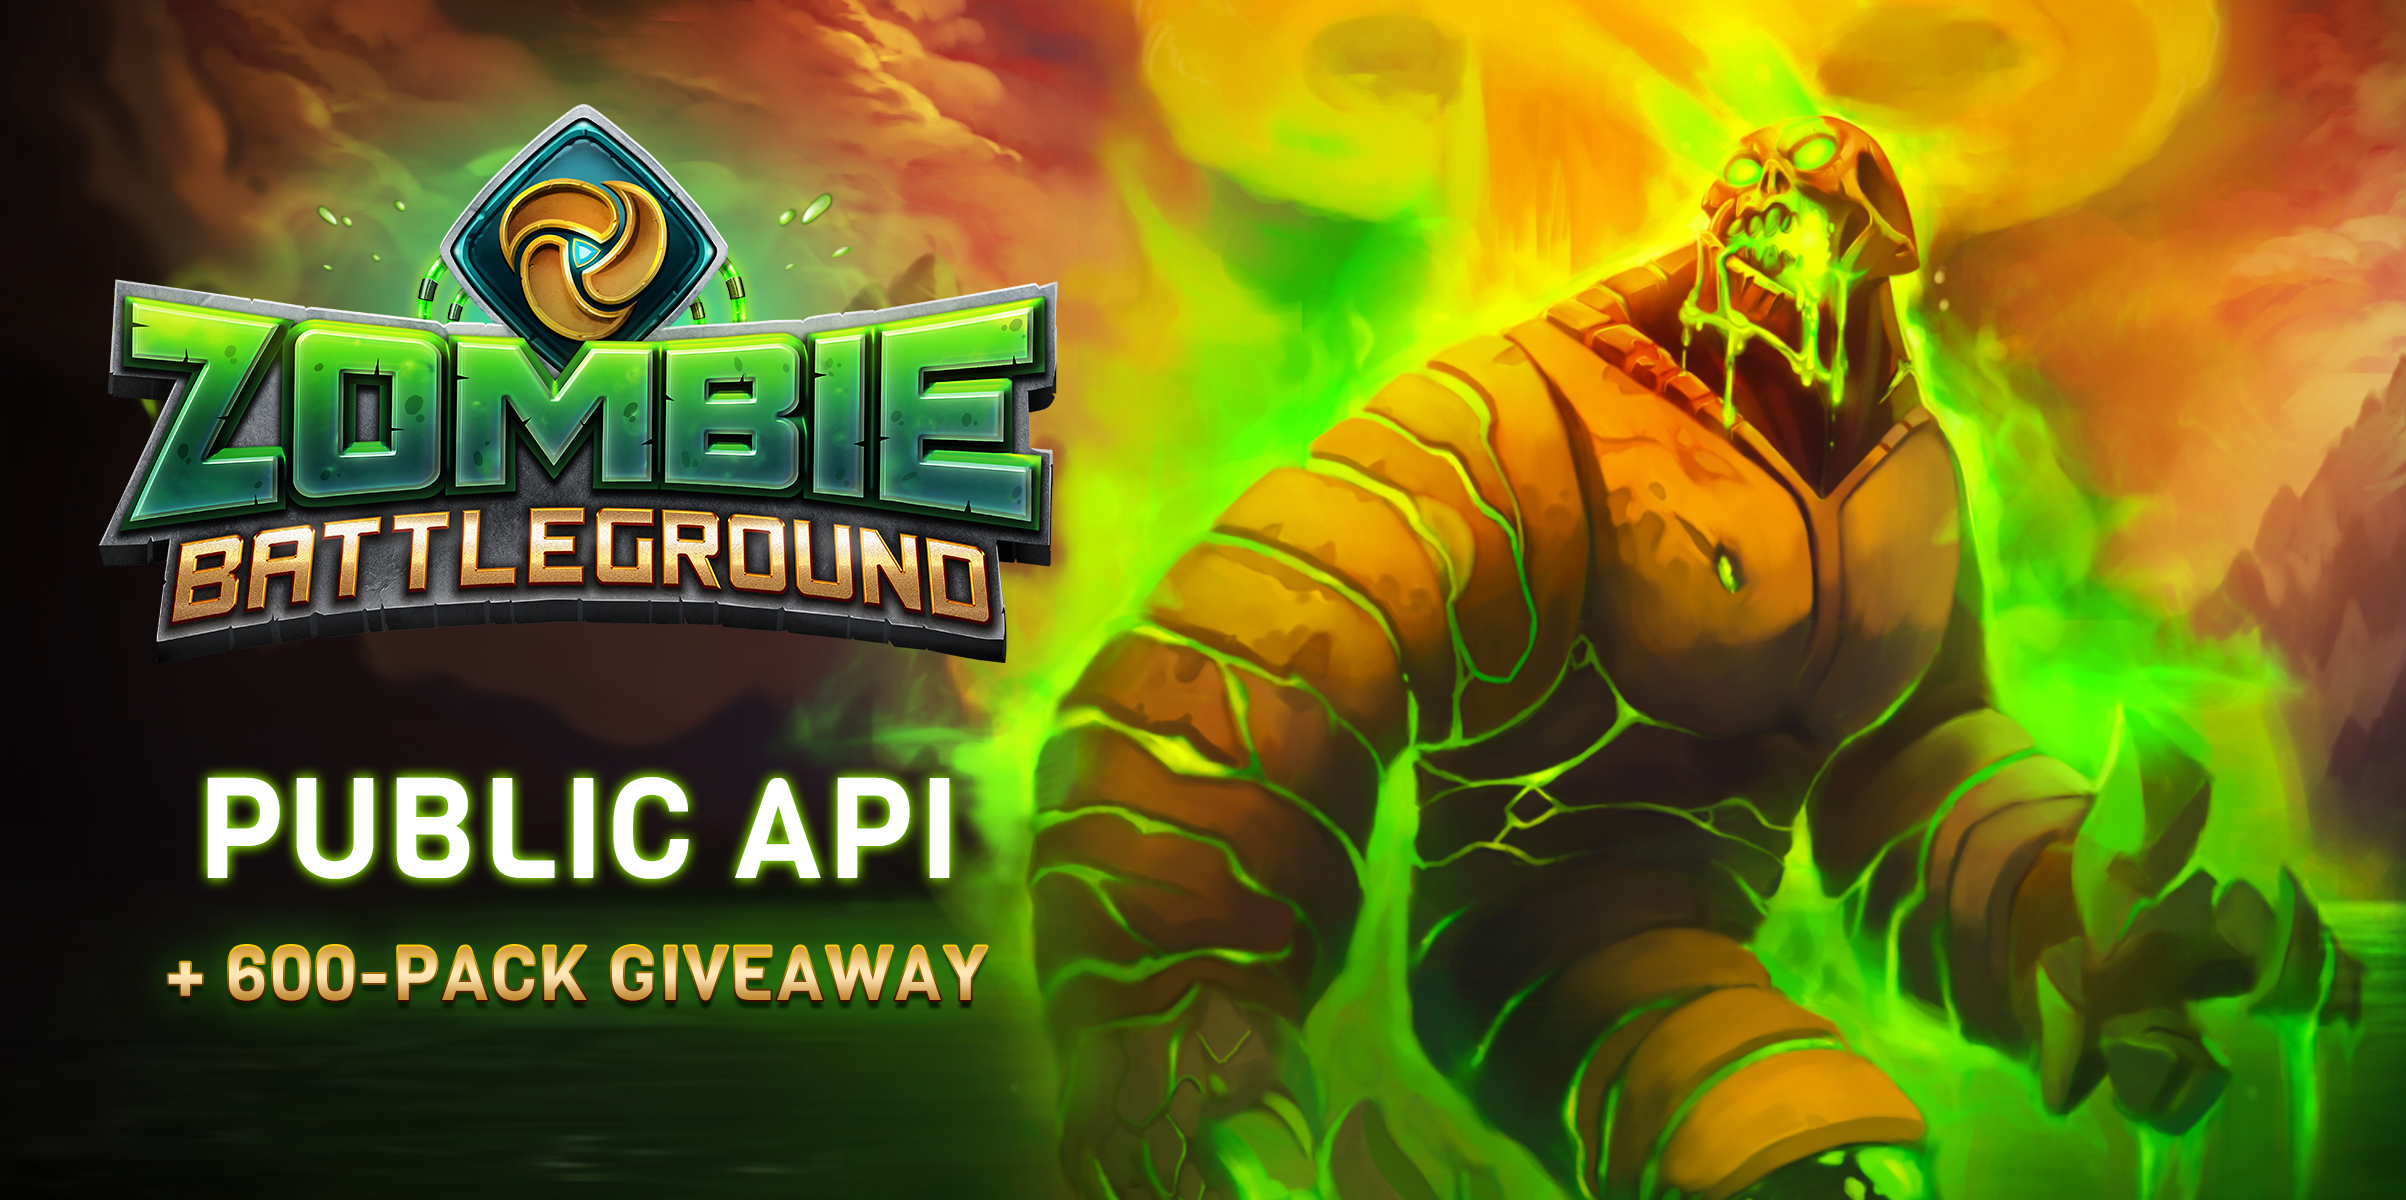 Introducing Zombie Battleground Public API (+600-Pack Giveaway)